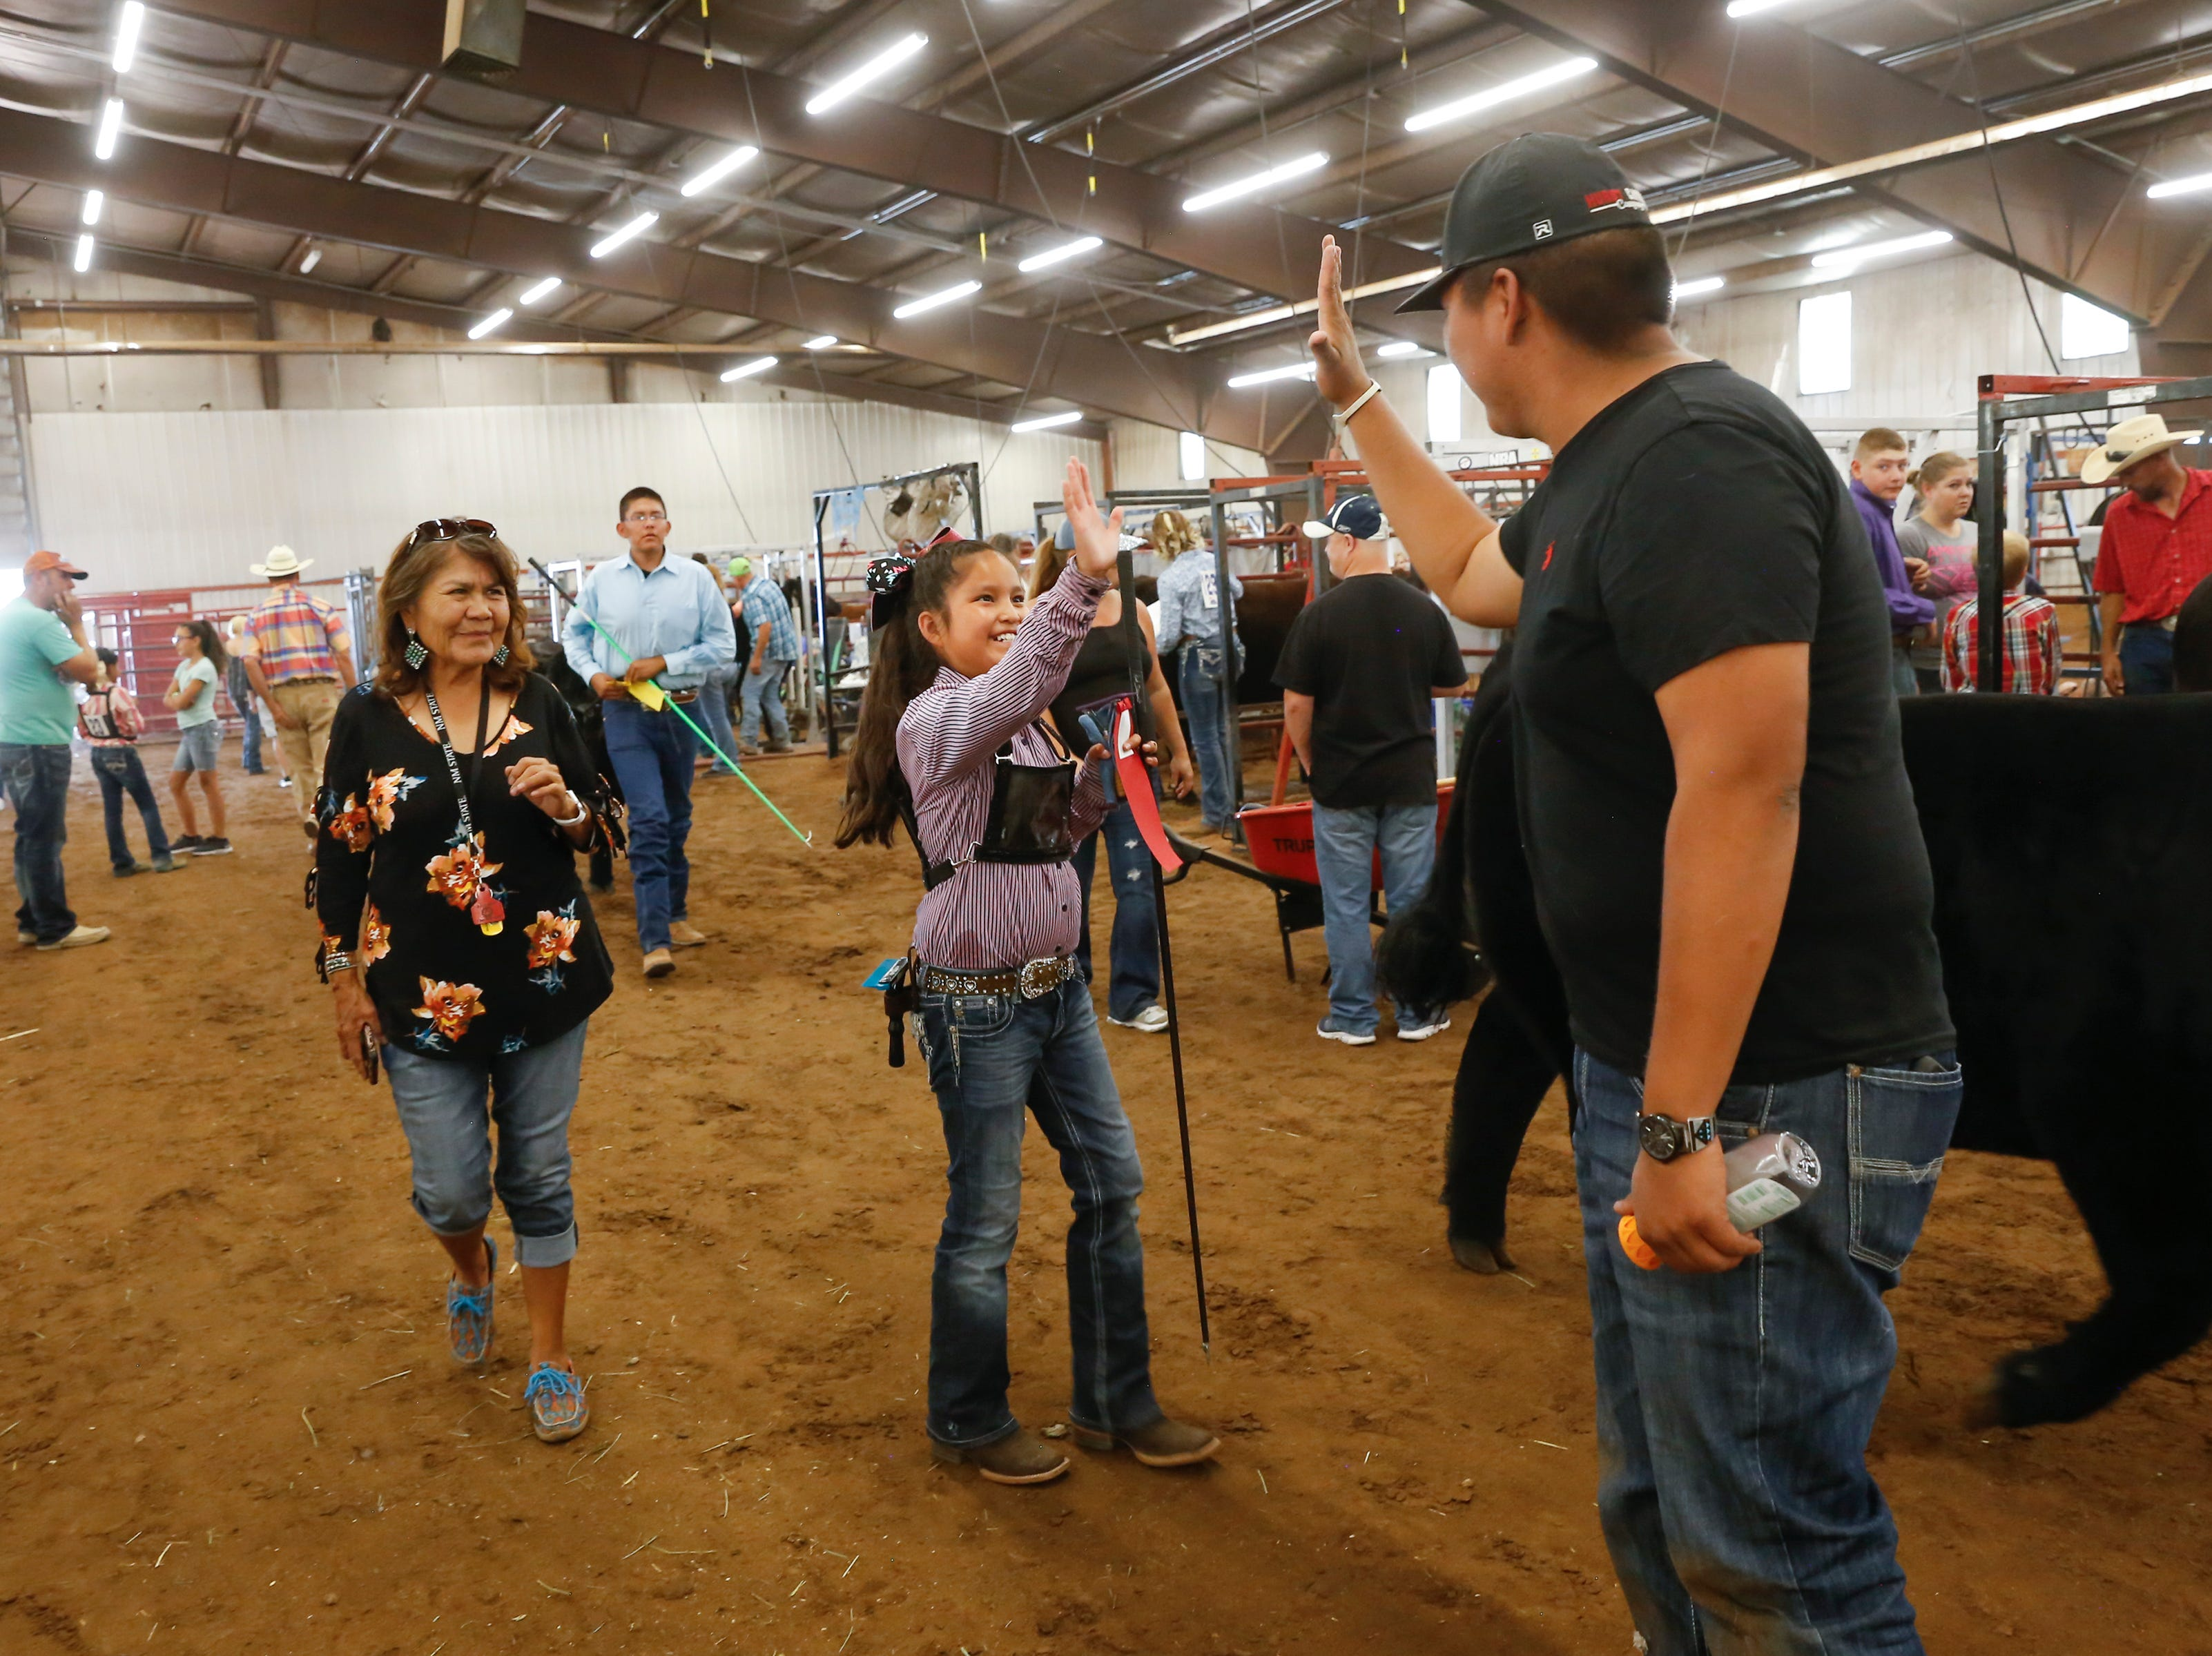 Tatum Lantana, center, gets a high five from Matt Denetclaw, right, after Lantana scored second place with her steer Major, Thursday, Aug. 16, 2018 at the annual beef show at the San Juan County Fair at McGee Park in Farmington.